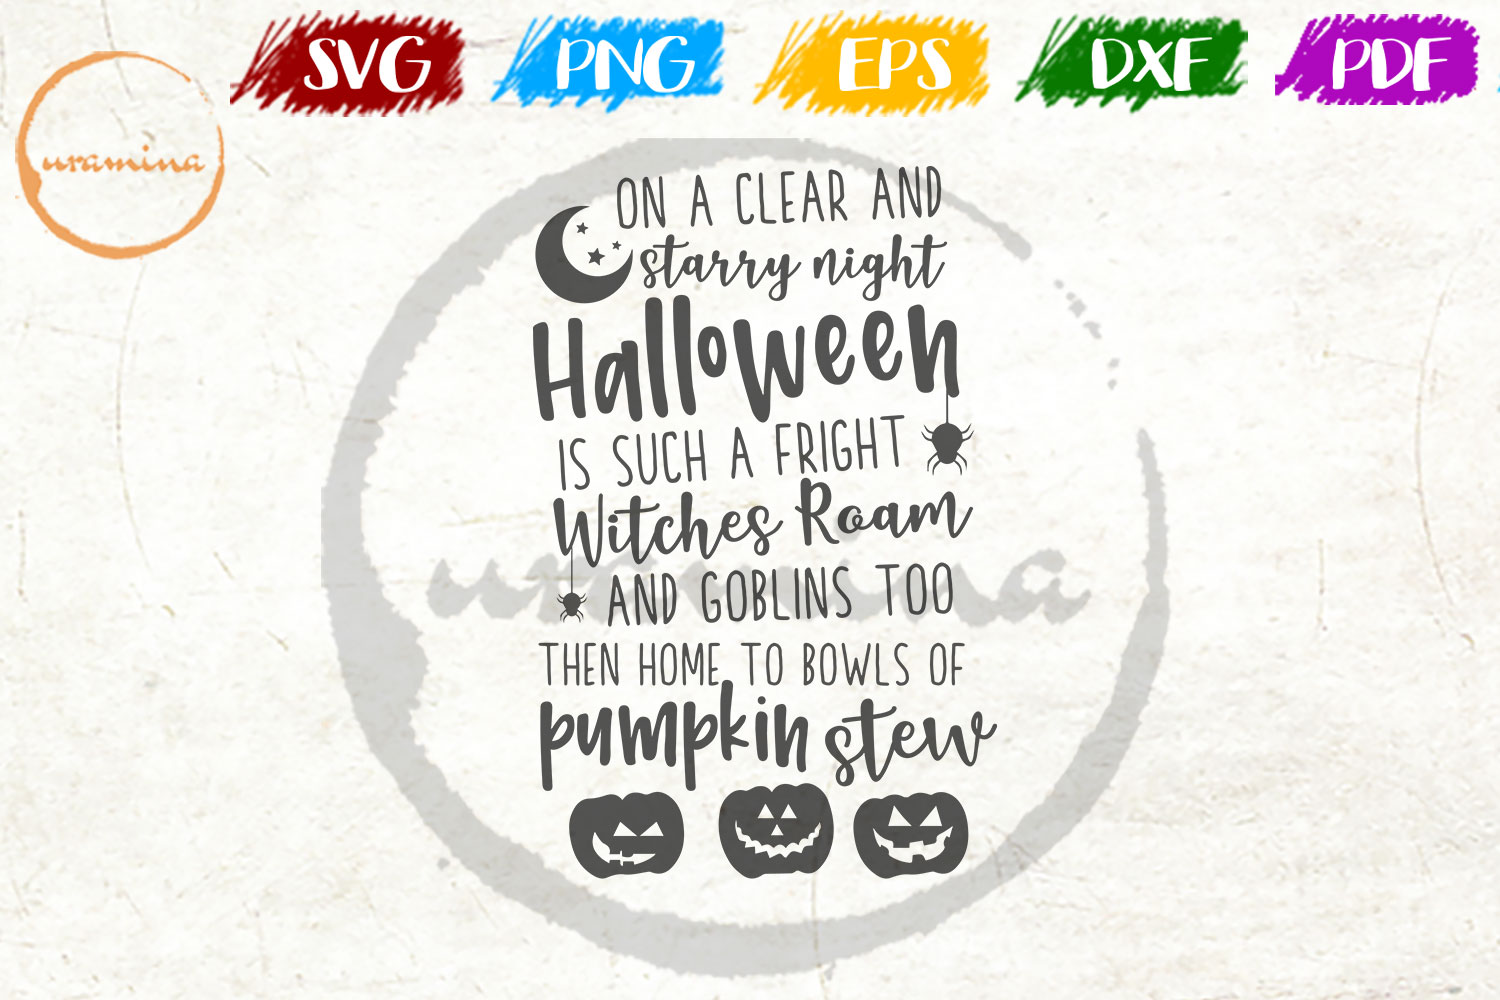 Download Free On A Clear And Starry Night Halloween Graphic By Uramina for Cricut Explore, Silhouette and other cutting machines.